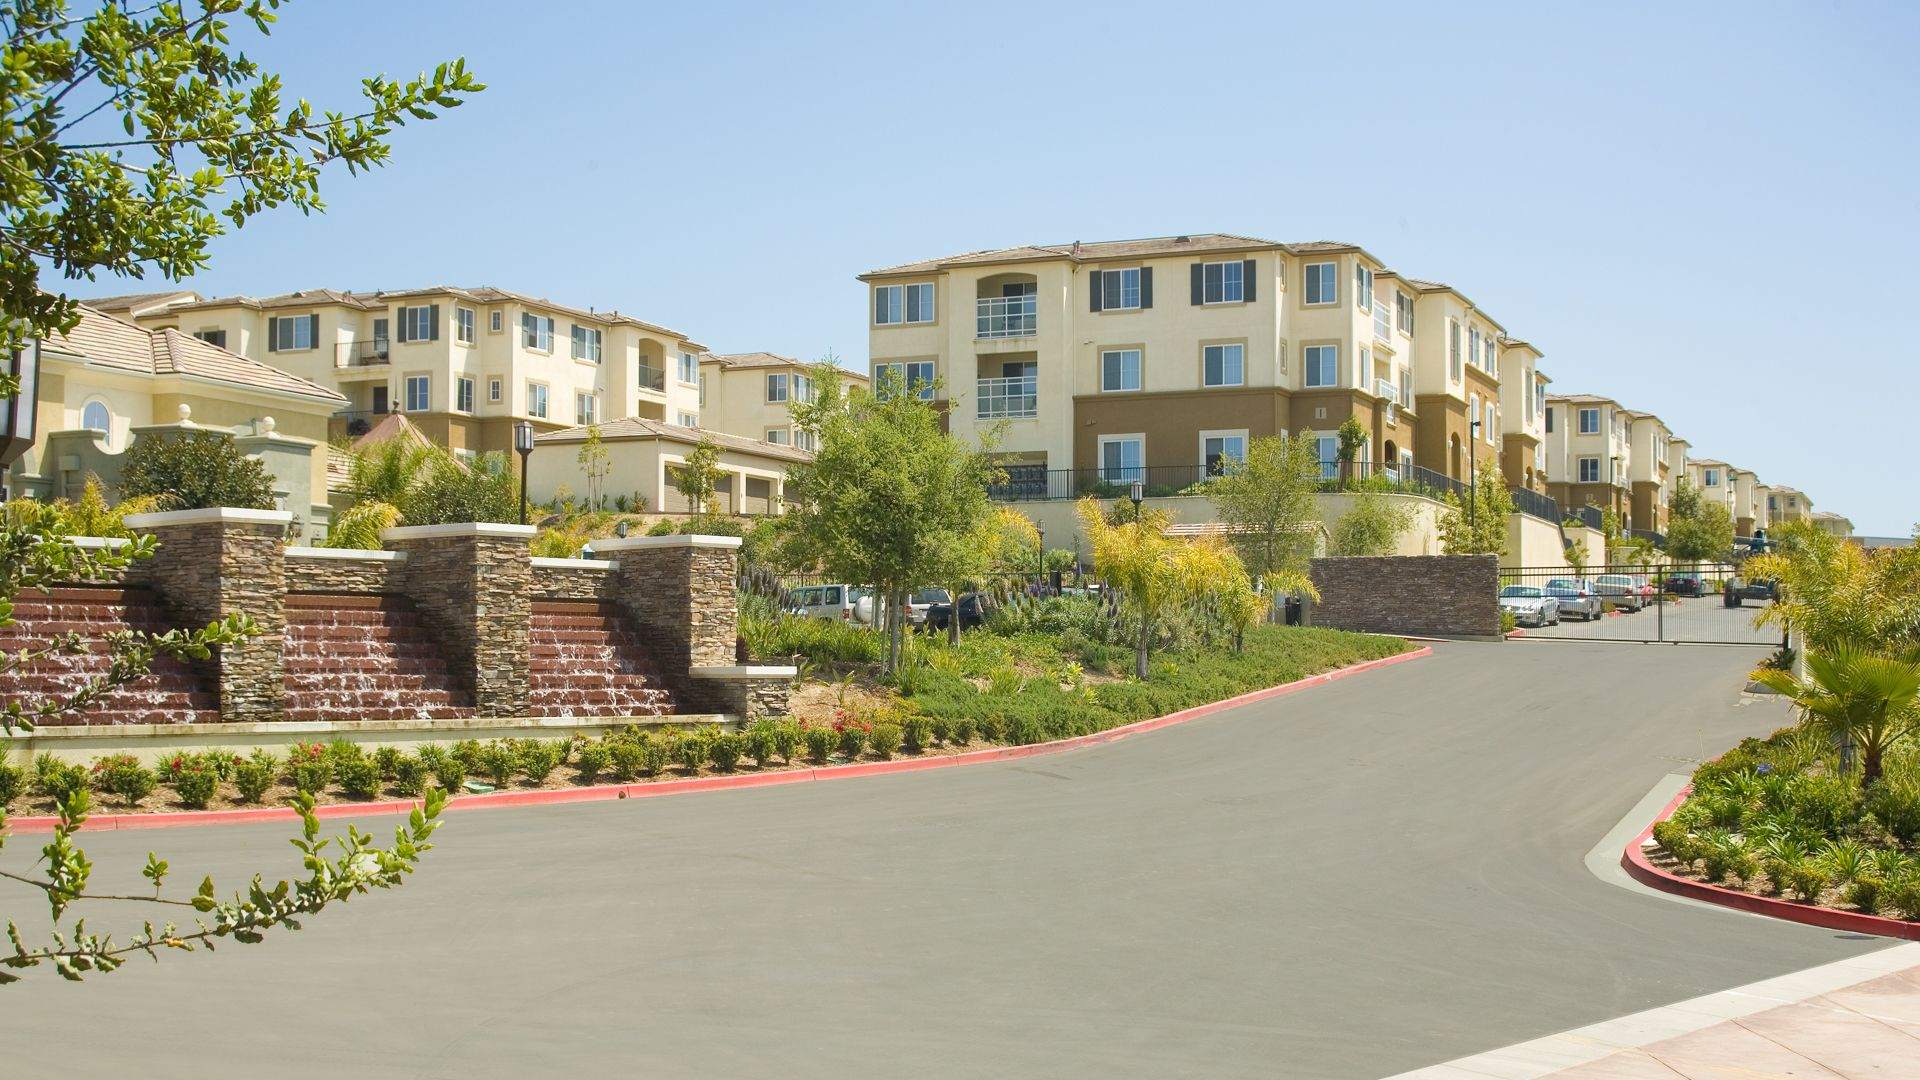 Bella Vista At Warner Ridge Apartments - Exterior